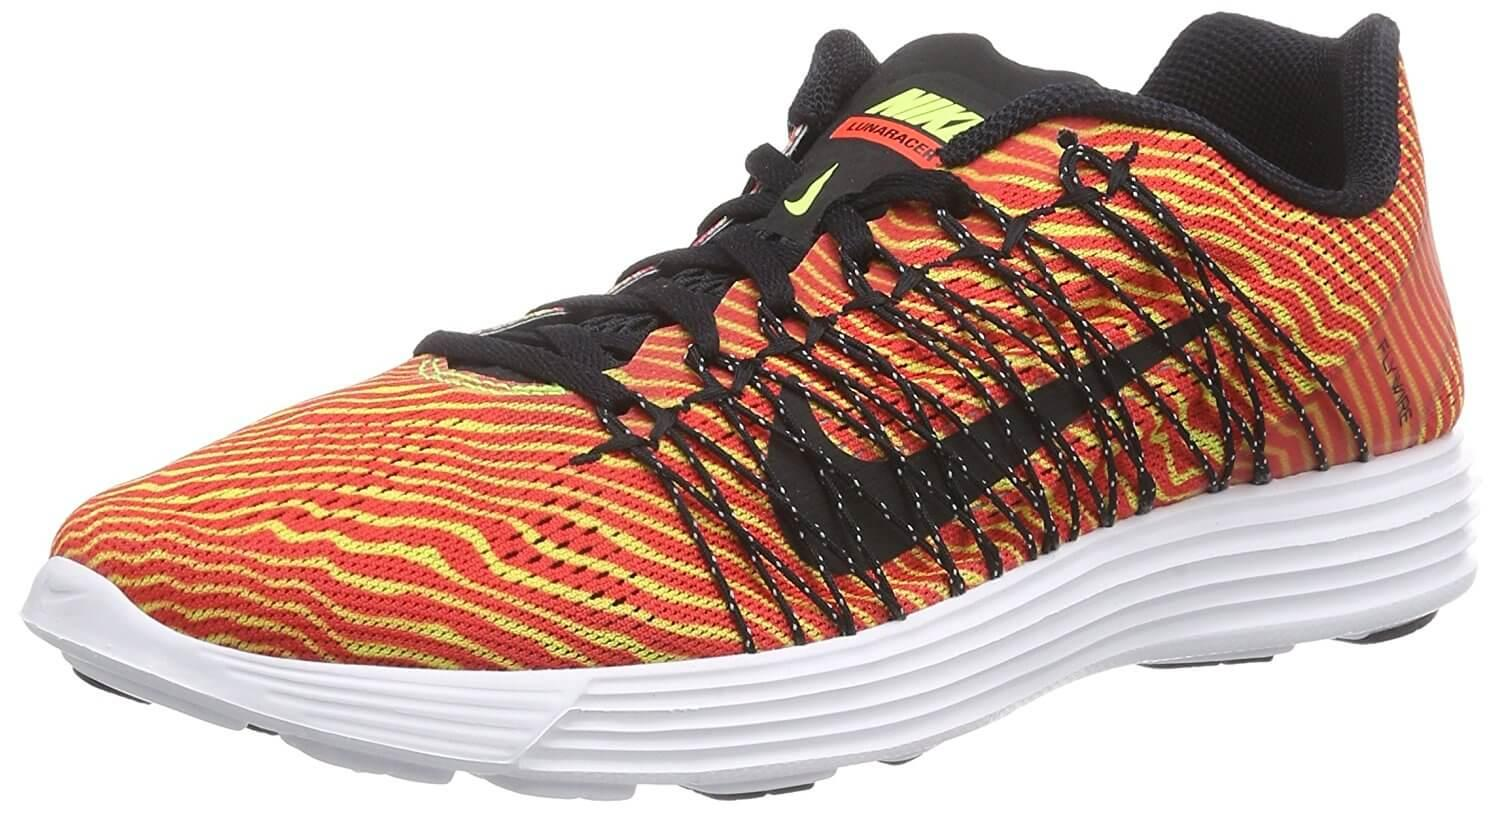 the Nike LunaRacer 3 is a stylish and comfortable road racing shoe